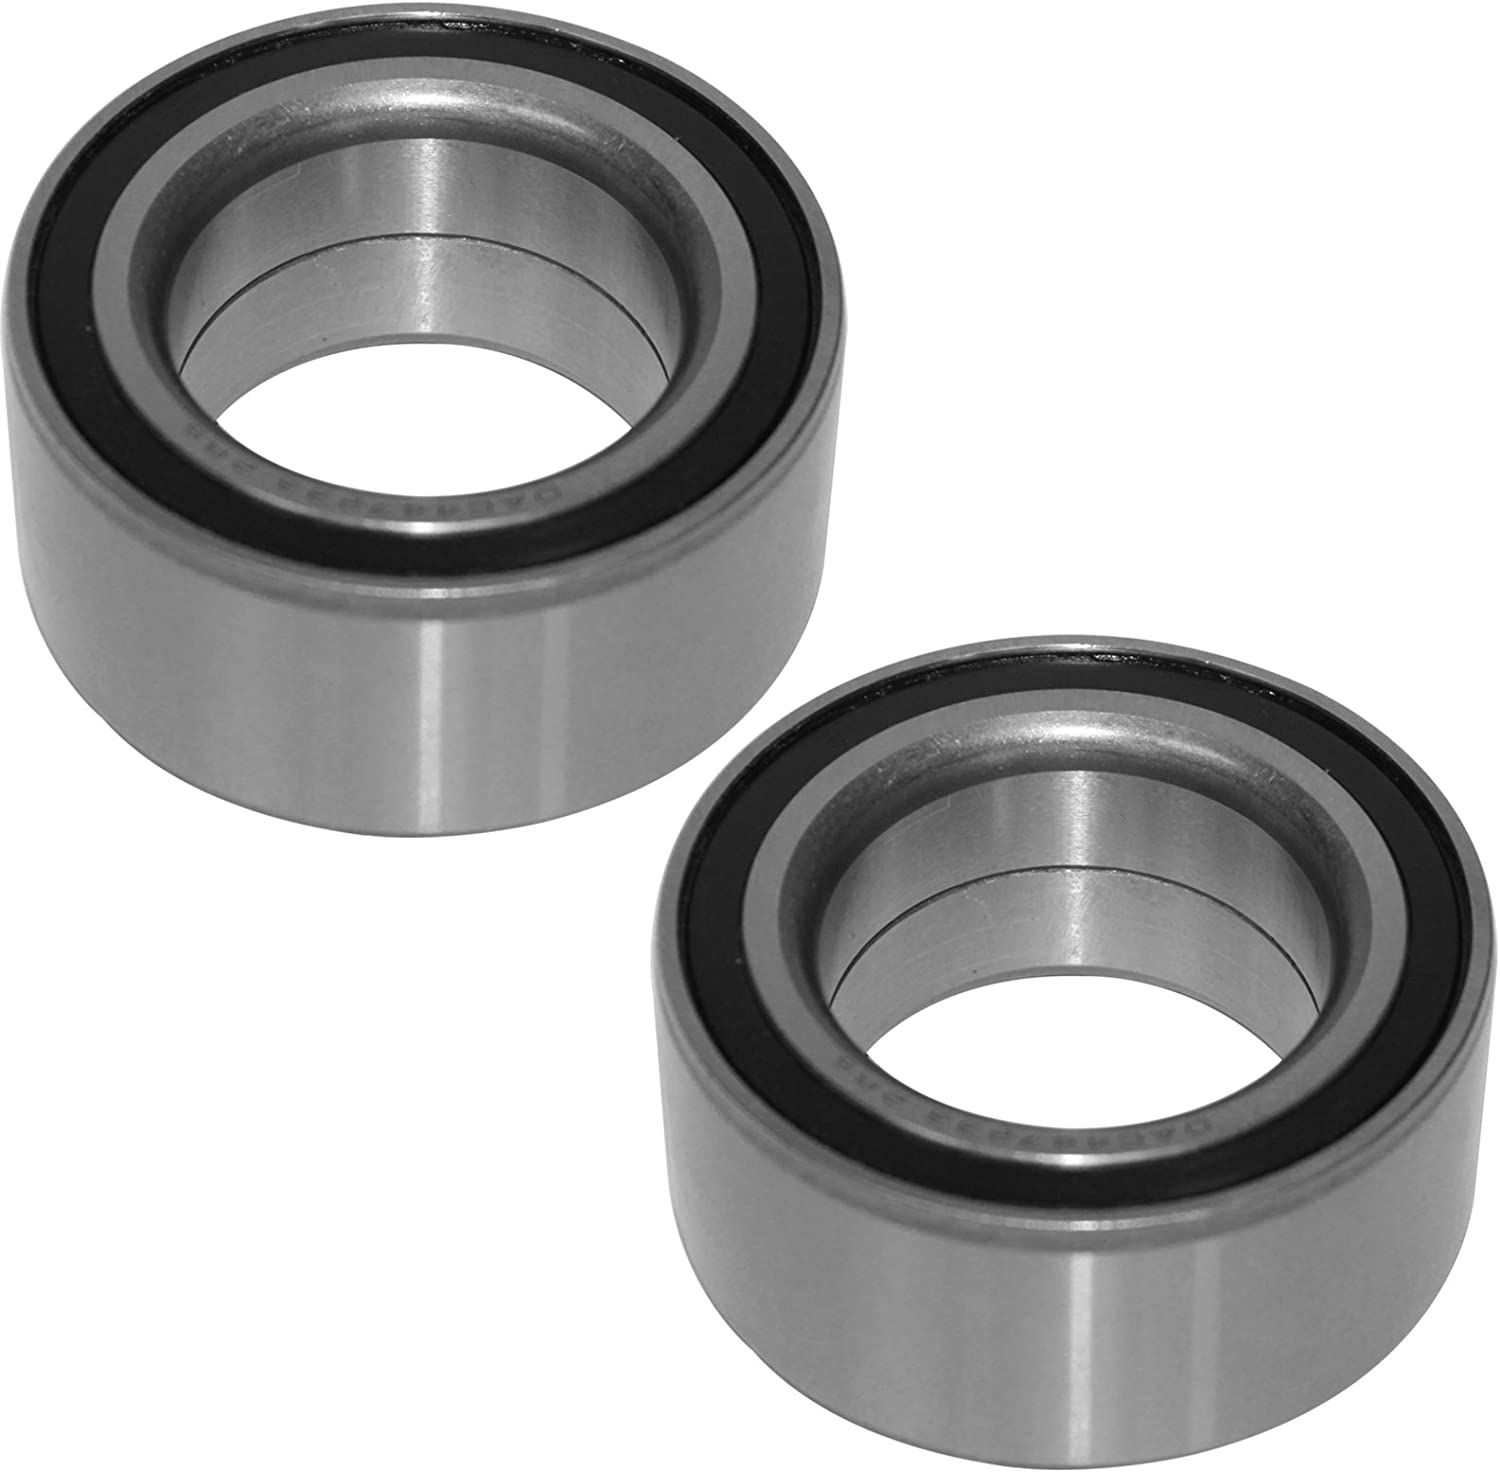 Front Wheel Ball Bearings Fits POLARIS RANGER RZR 800 EFI 2008 2010-2014